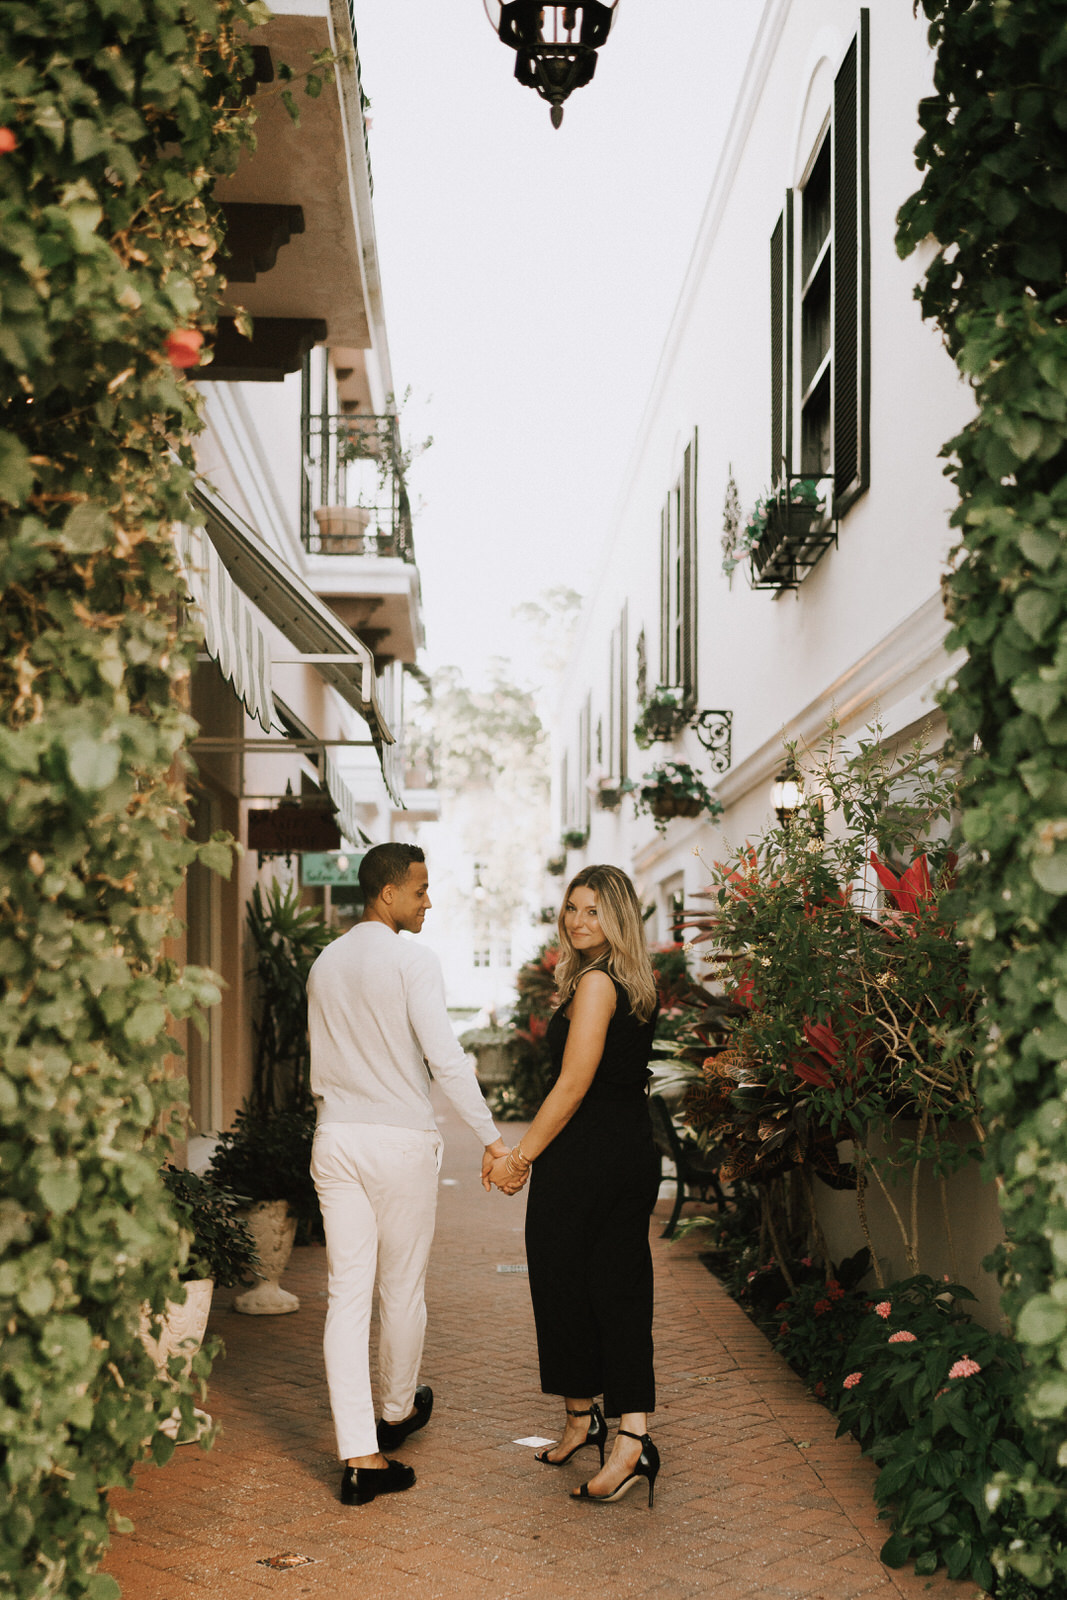 Naples 5th Ave Engagement Photos- Michelle Gonzalez Photography- Michele + Troy-226.JPG